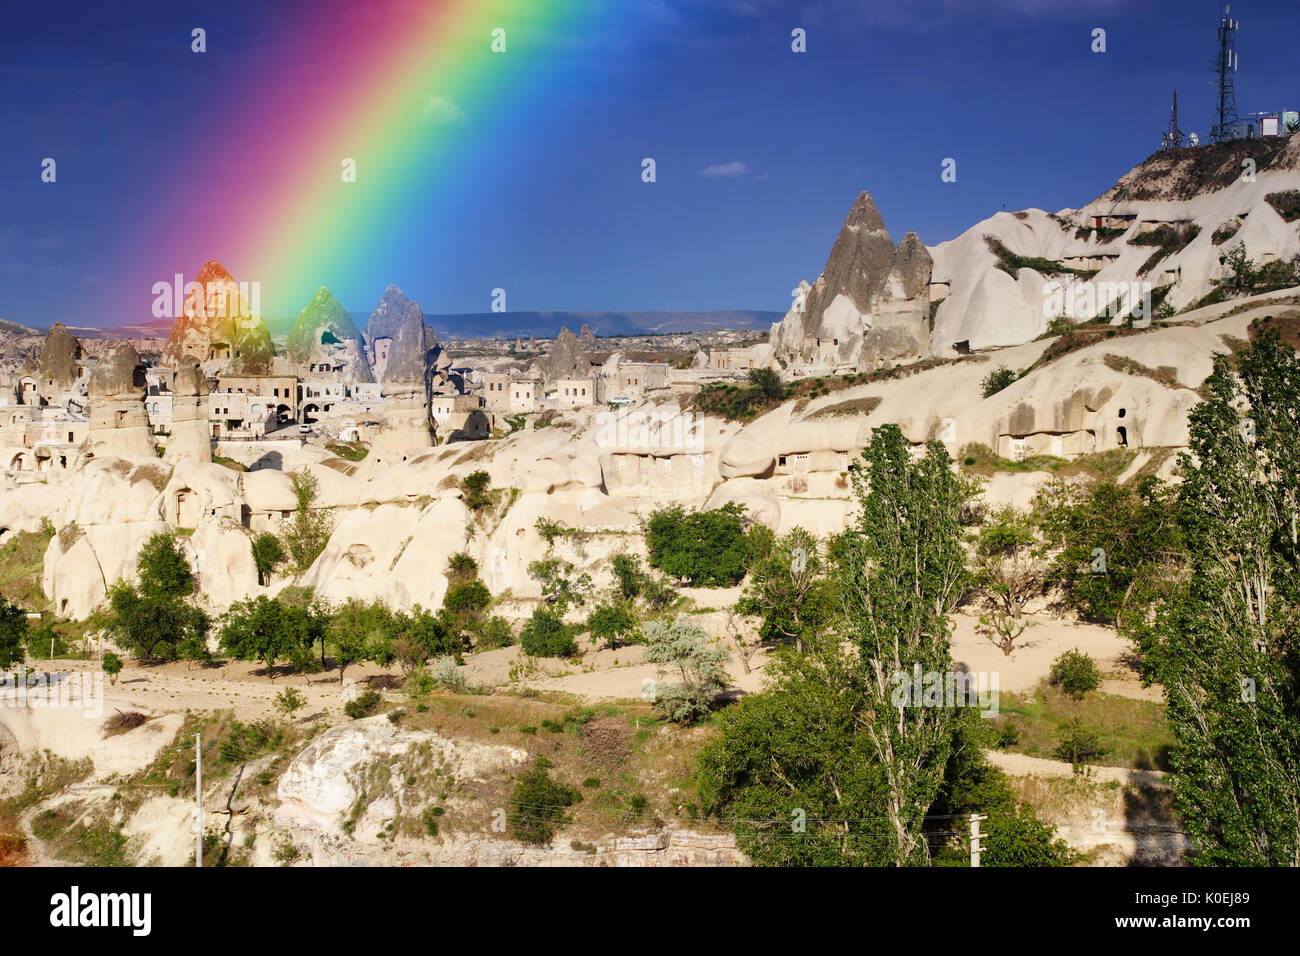 View of the Uchisar valley and the city of Goreme. Cave towns. Cappadocia, Turkey. - Stock Image